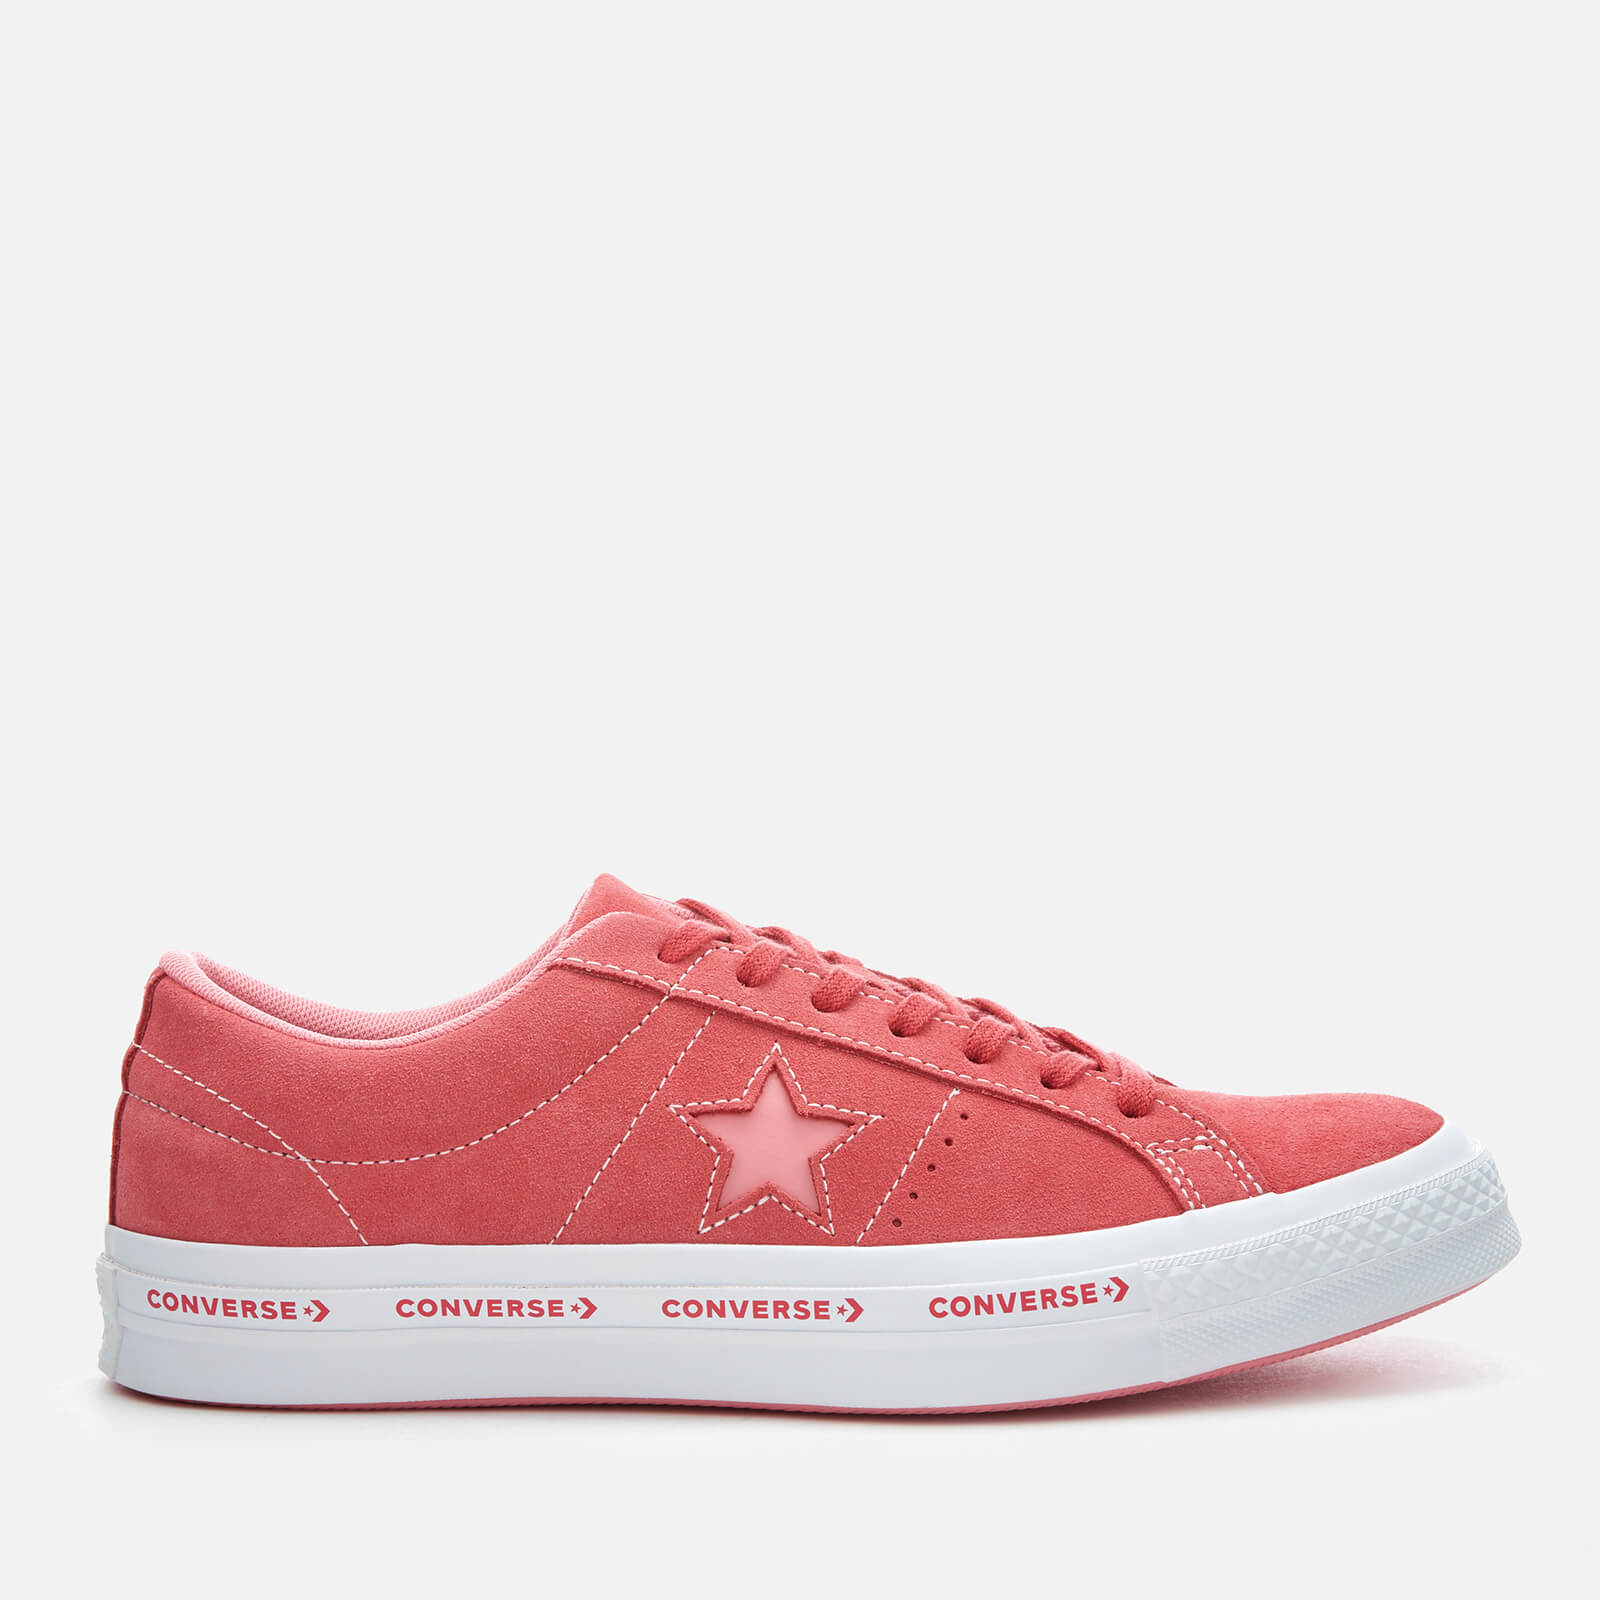 d80304ae2a20 Converse One Star Ox Trainers - Paradise Pink Geranium Pink White Mens  Footwear